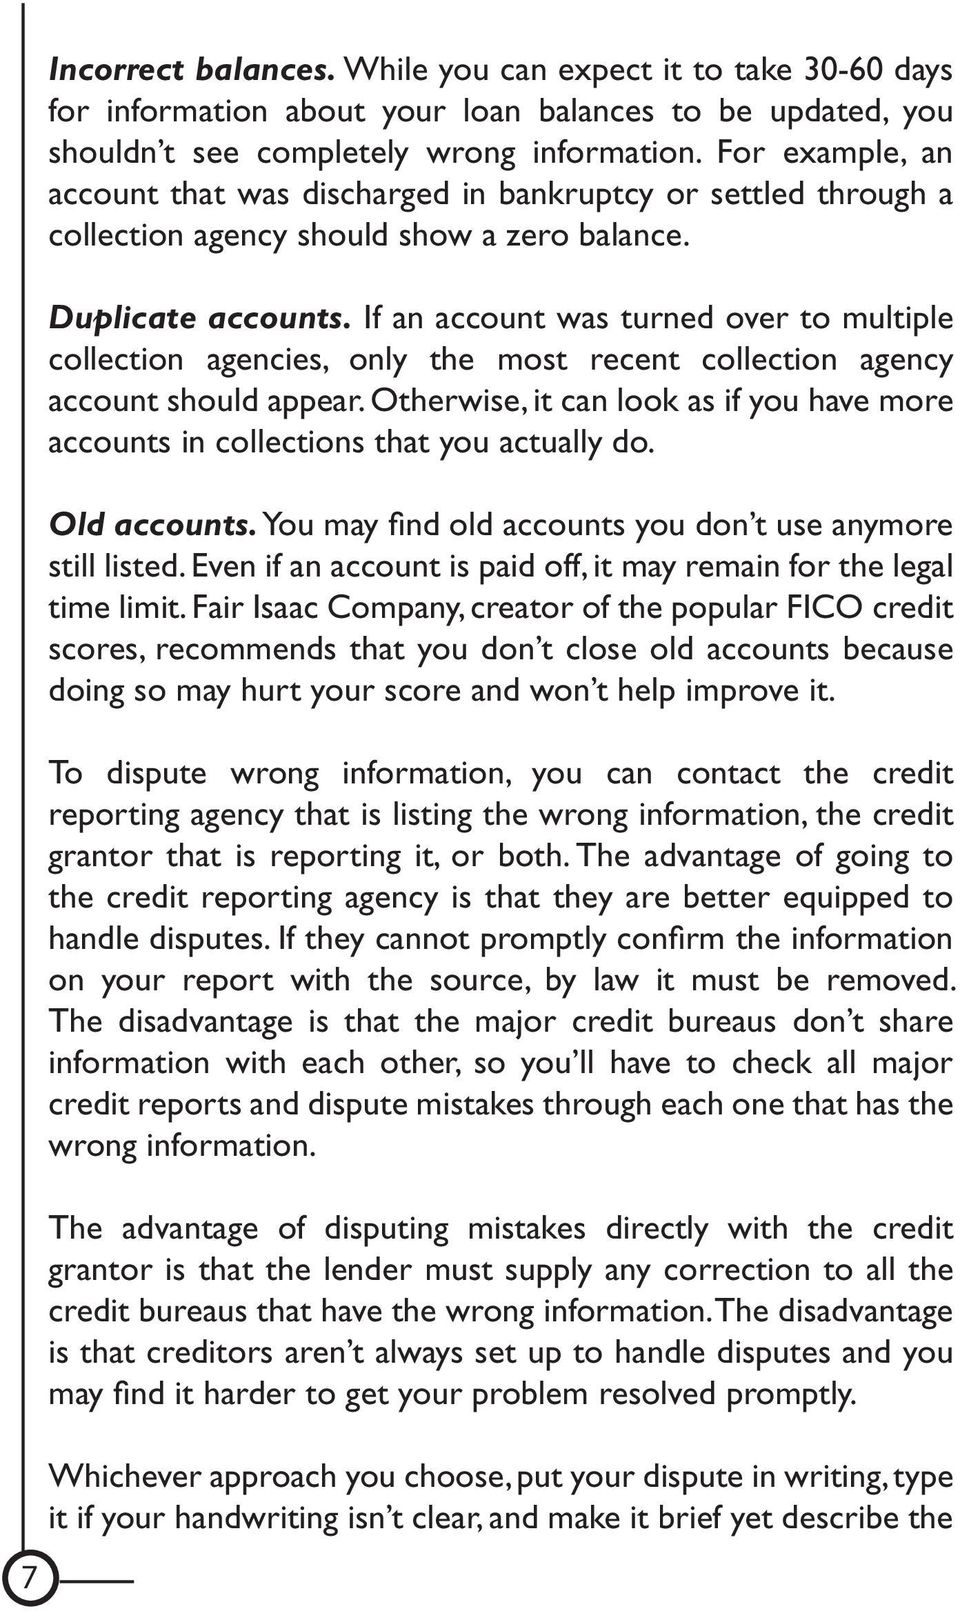 If an account was turned over to multiple collection agencies, only the most recent collection agency account should appear.